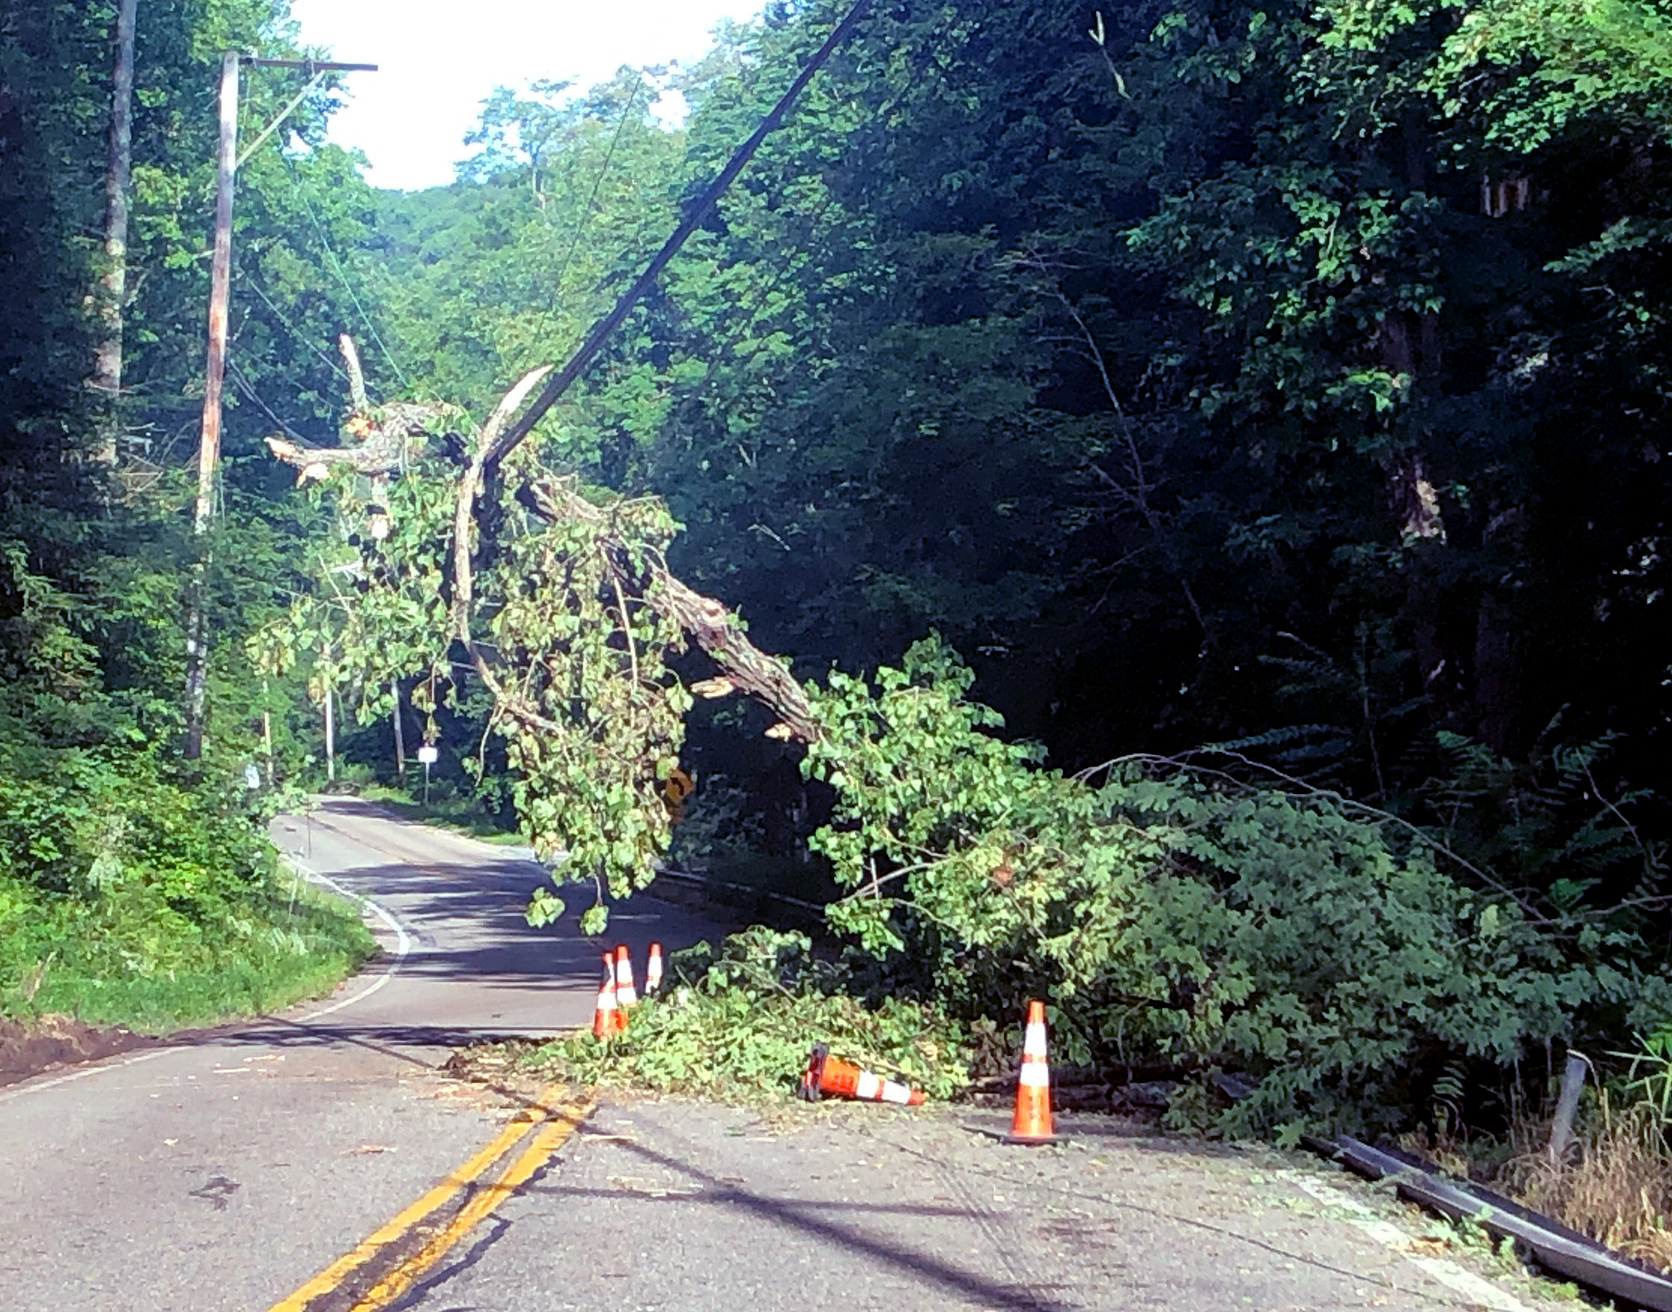 A large tree leans precariously on a powerline over Route 301 near CloudVisit's Hudson Valley offices